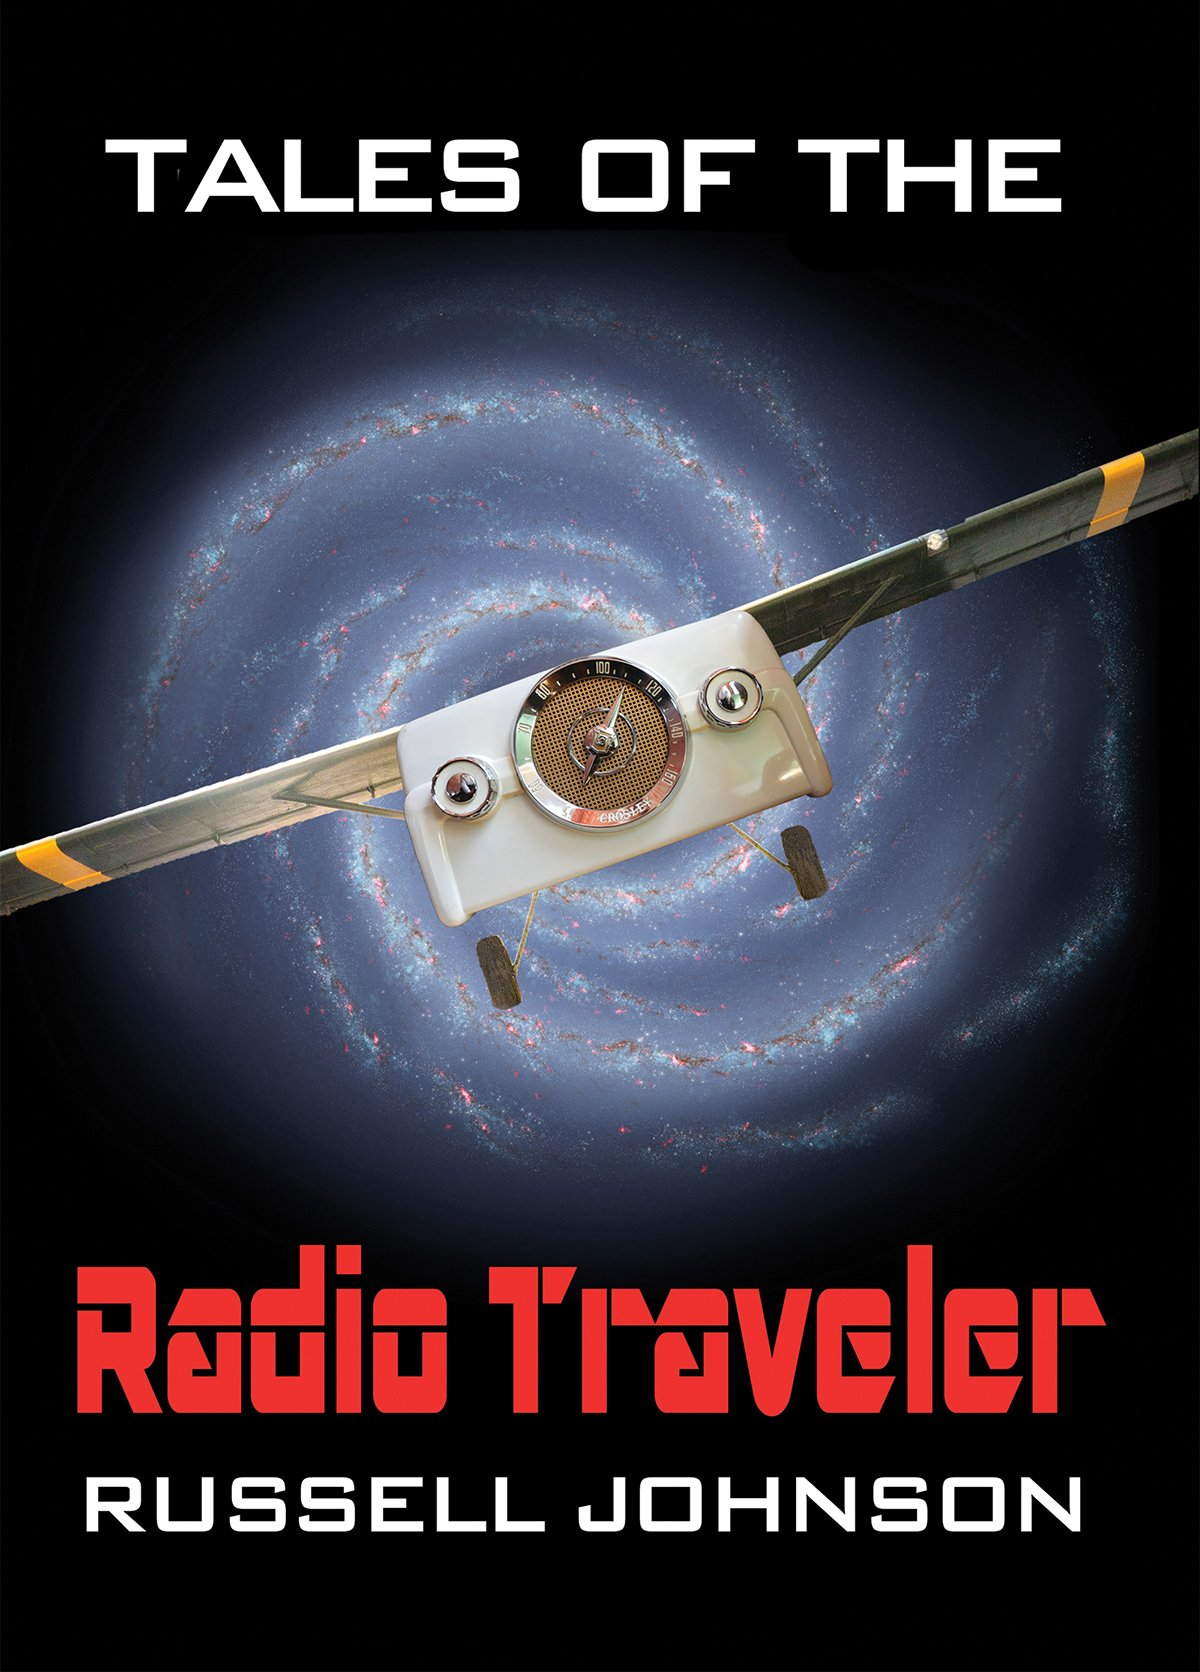 Tales of the Radio Traveler